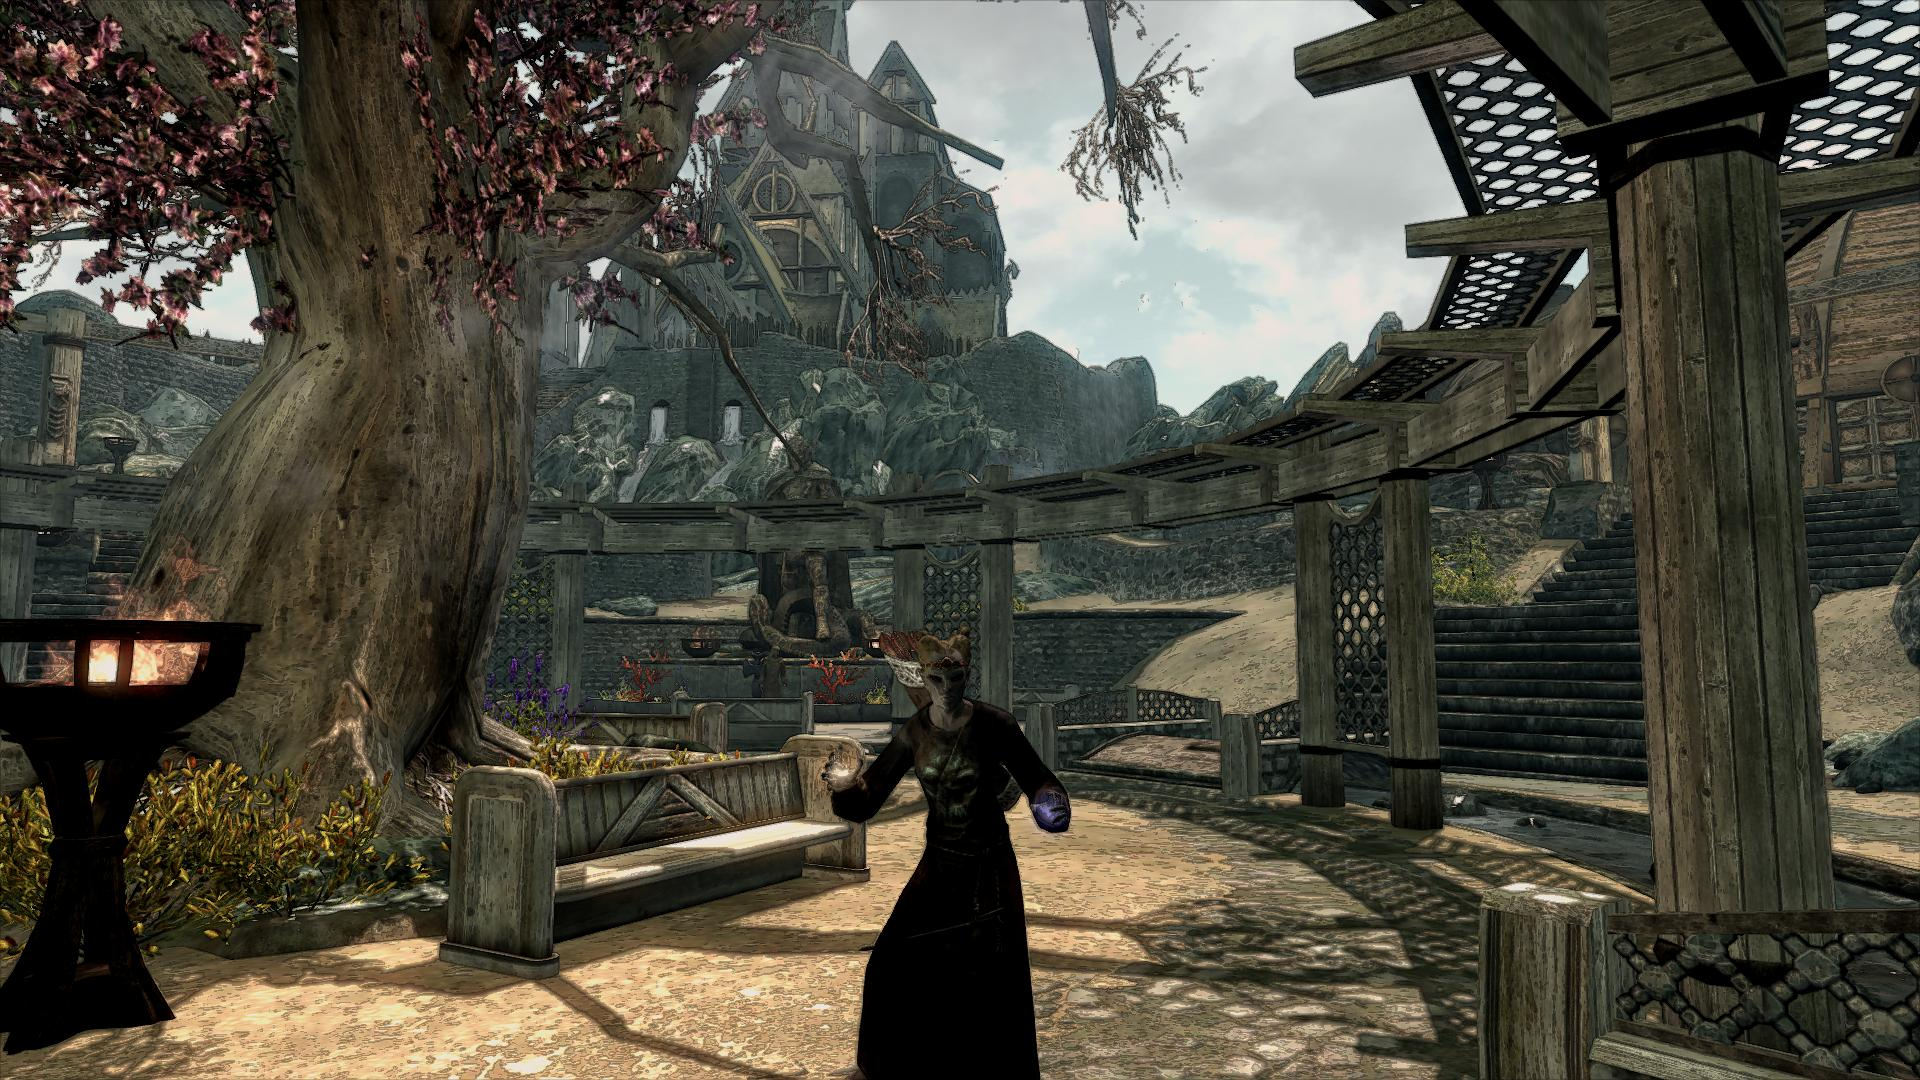 Skyrim graphic mods Not working